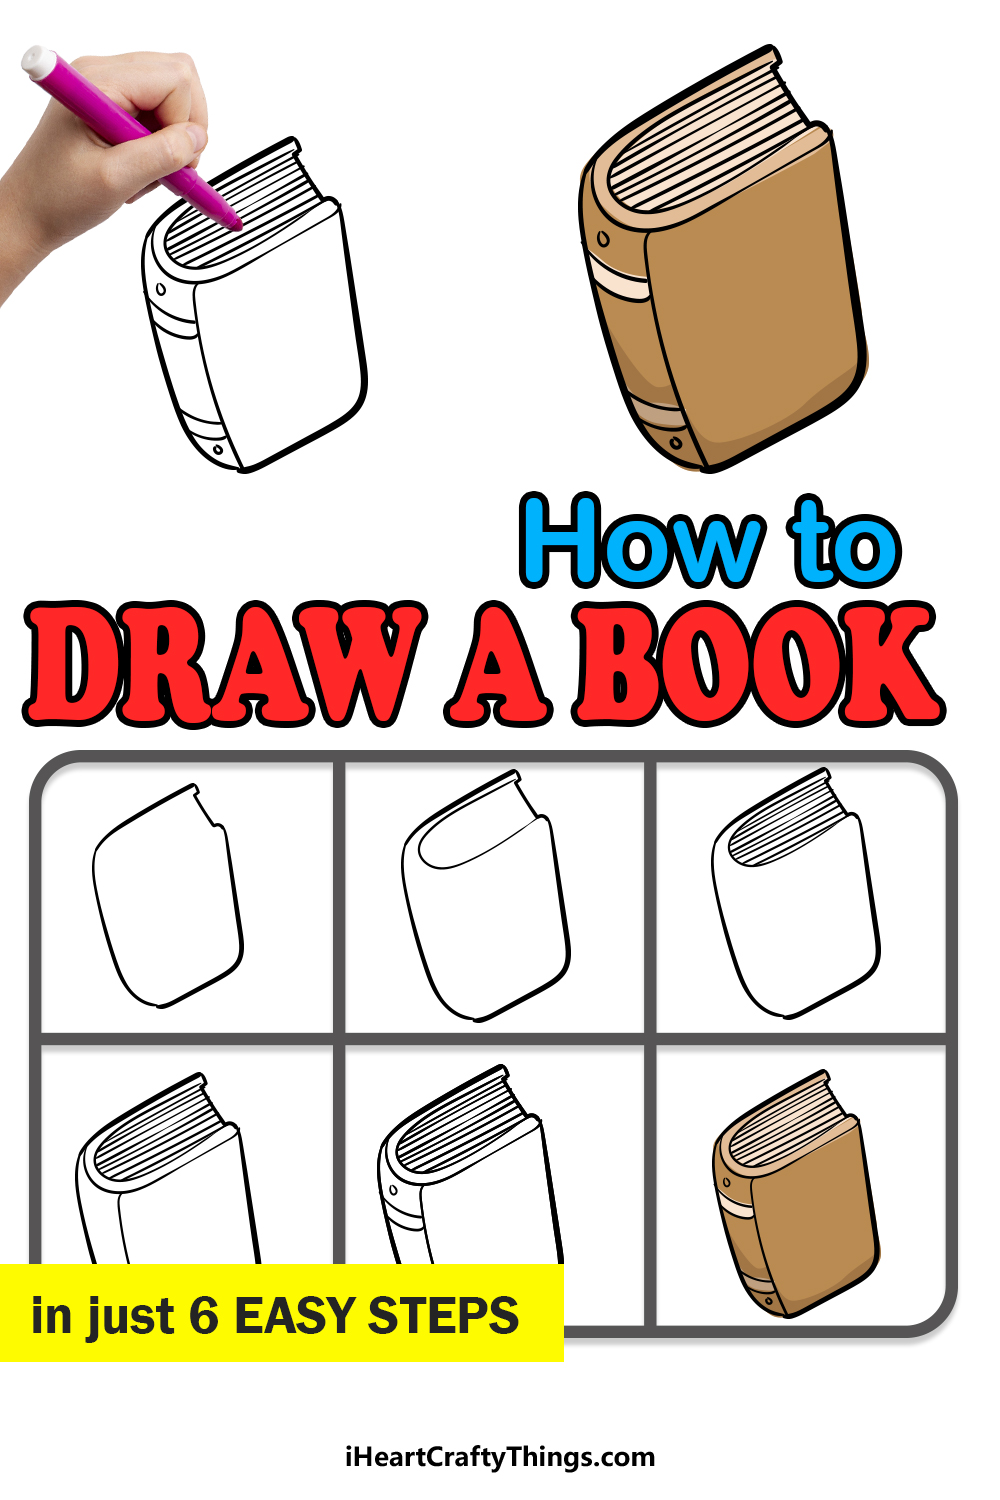 how to draw a book in 6 easy steps